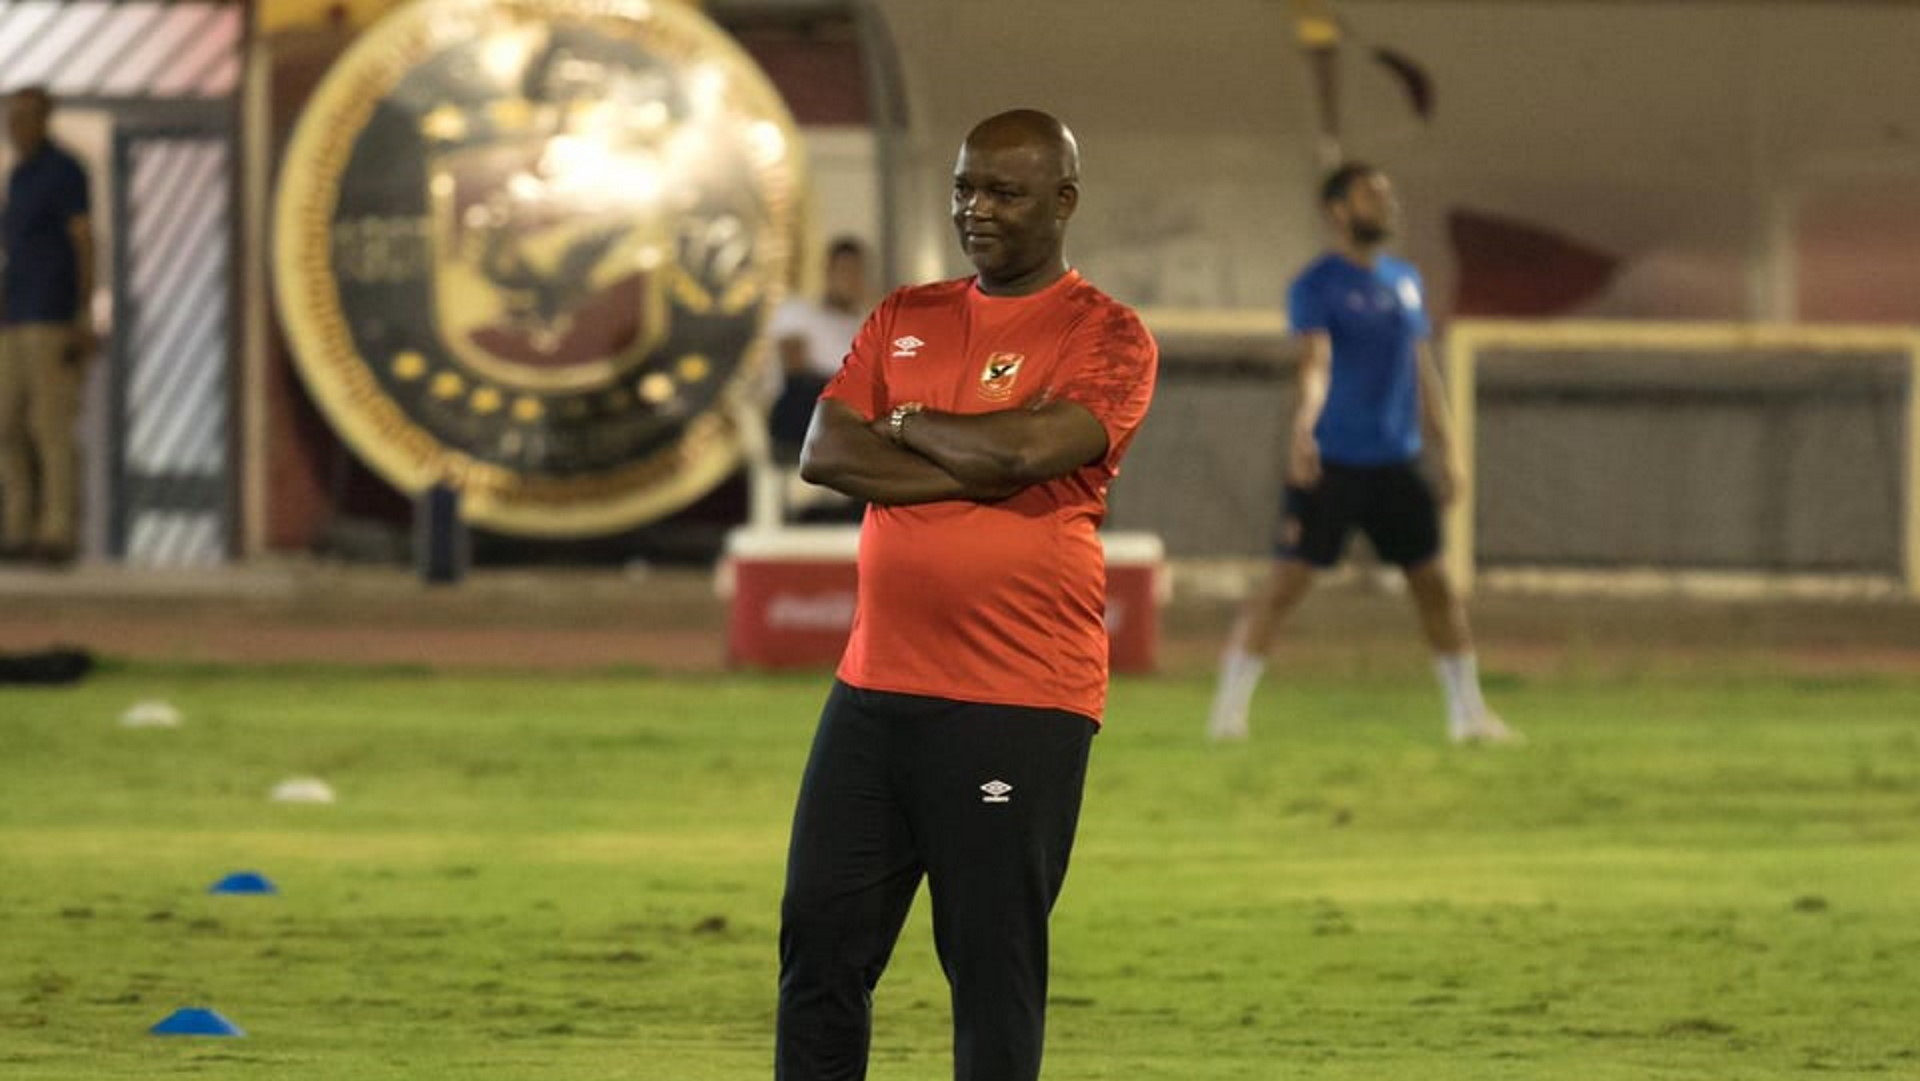 Mosimane: I Wanted to Score More Goals - Sada El balad